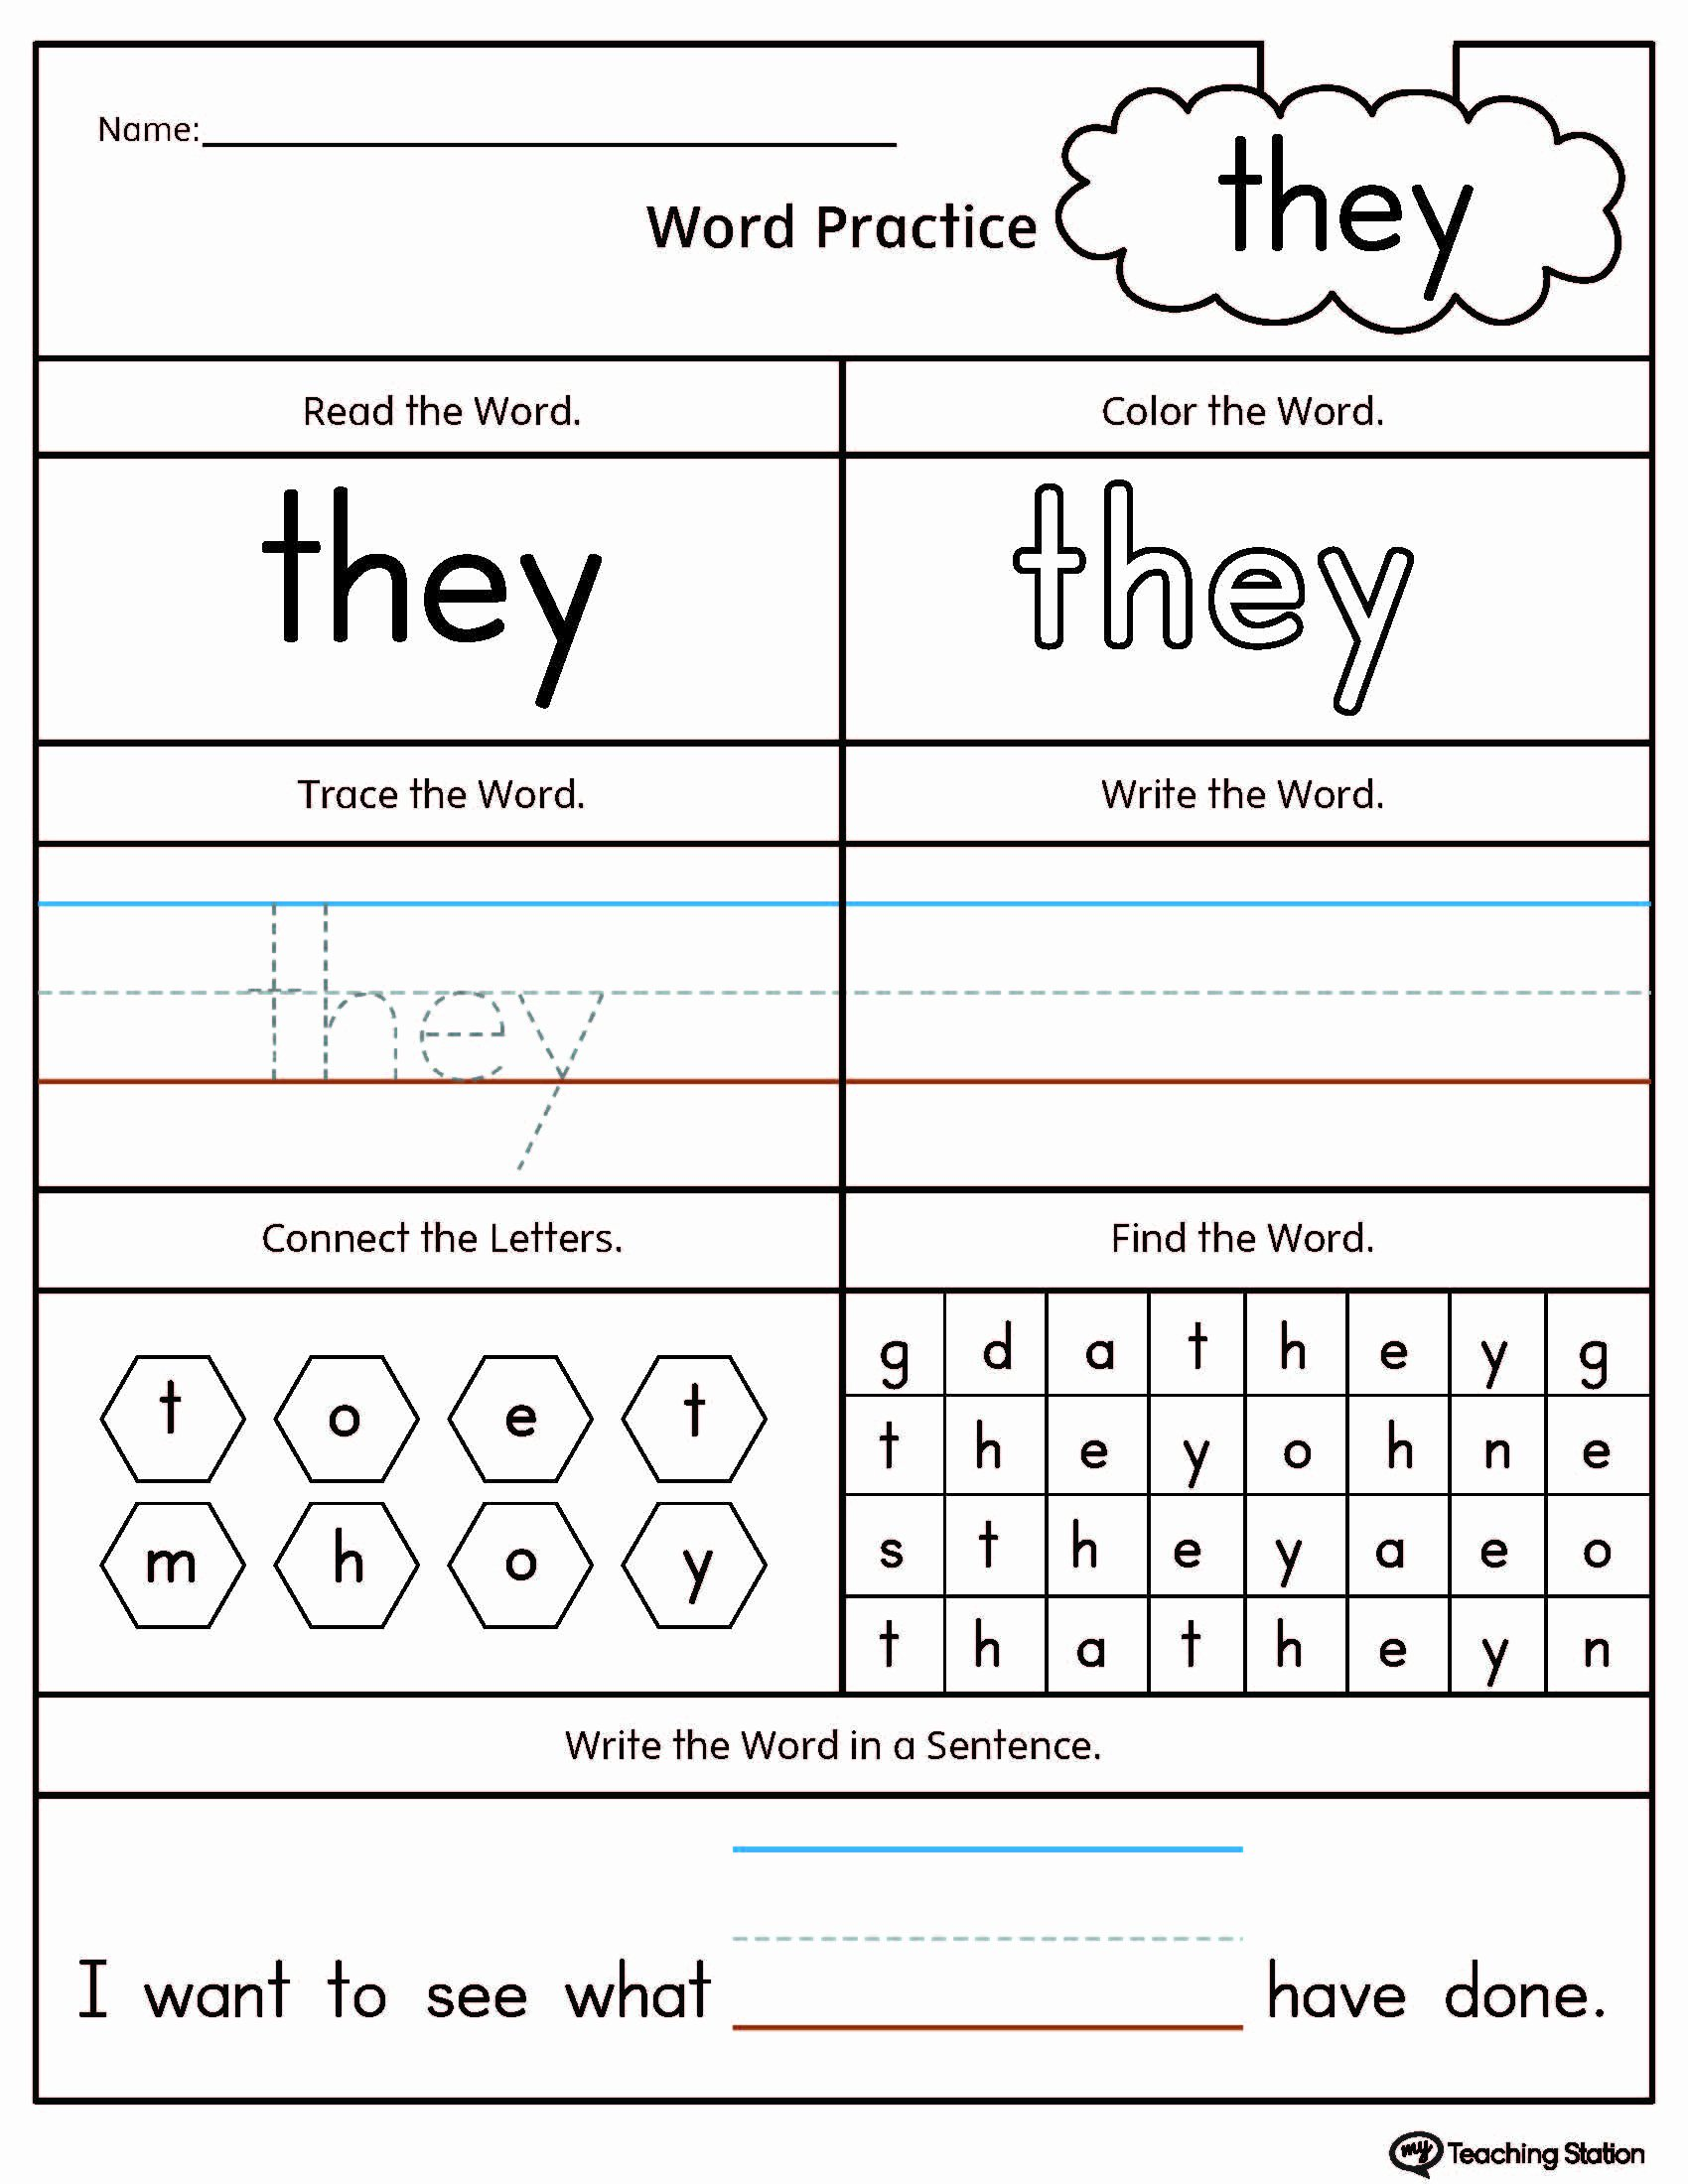 Sight Word Worksheets for Preschoolers Printable Printable Sight Word Worksheets for Preschool Brian Molko